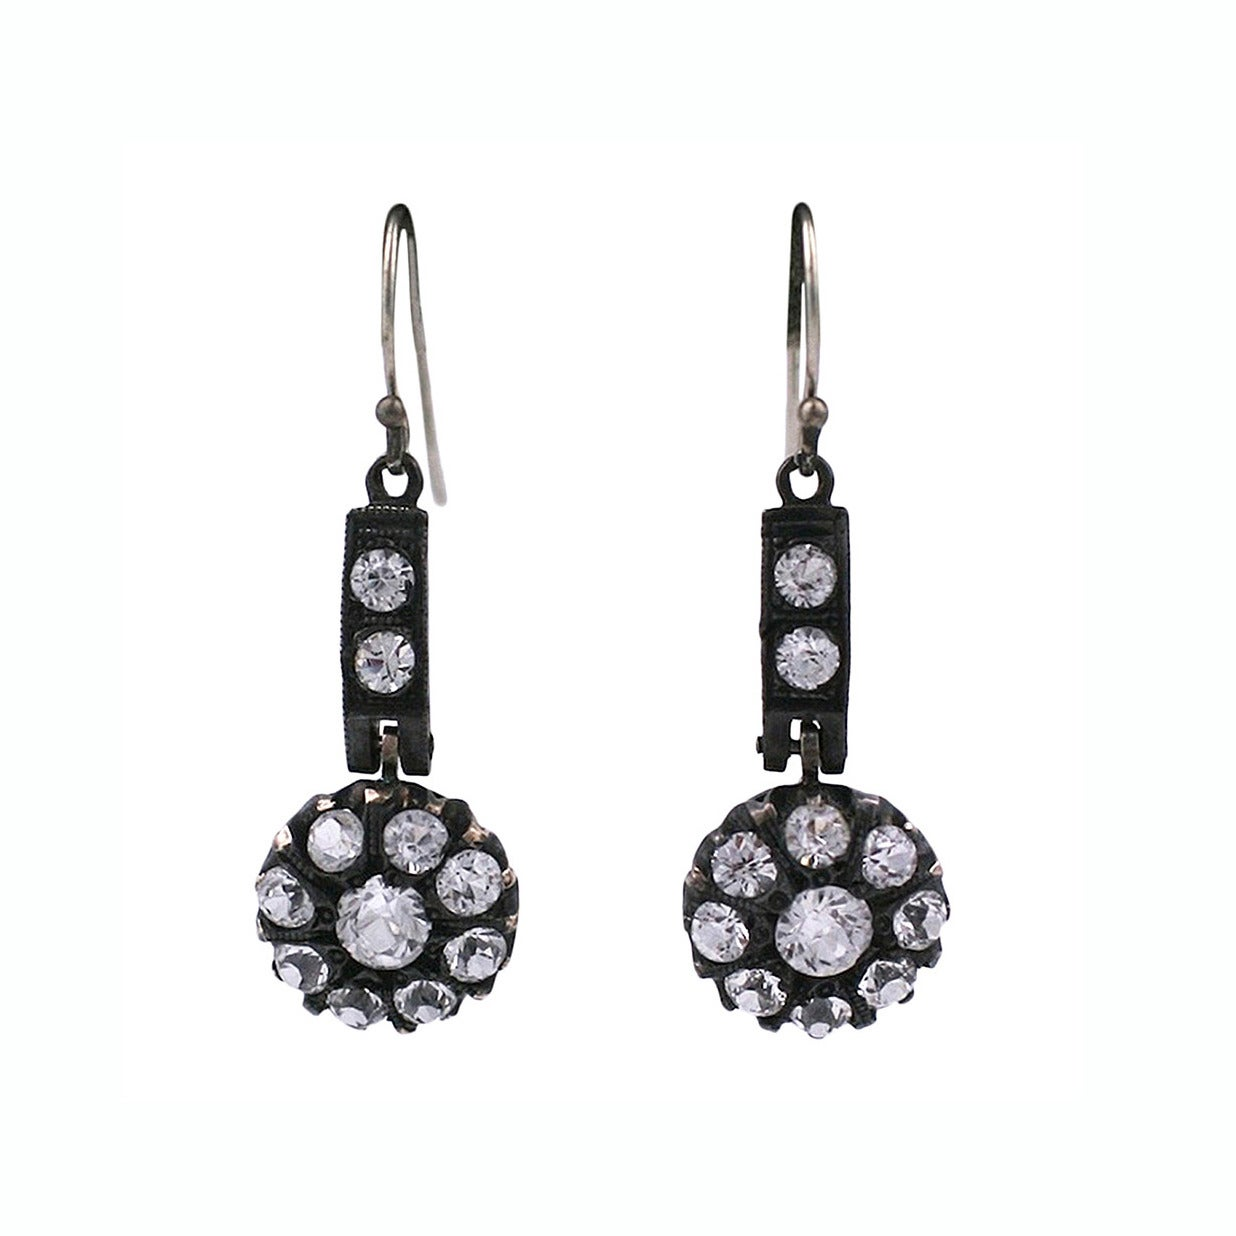 Antique Paste Earrings For Sale